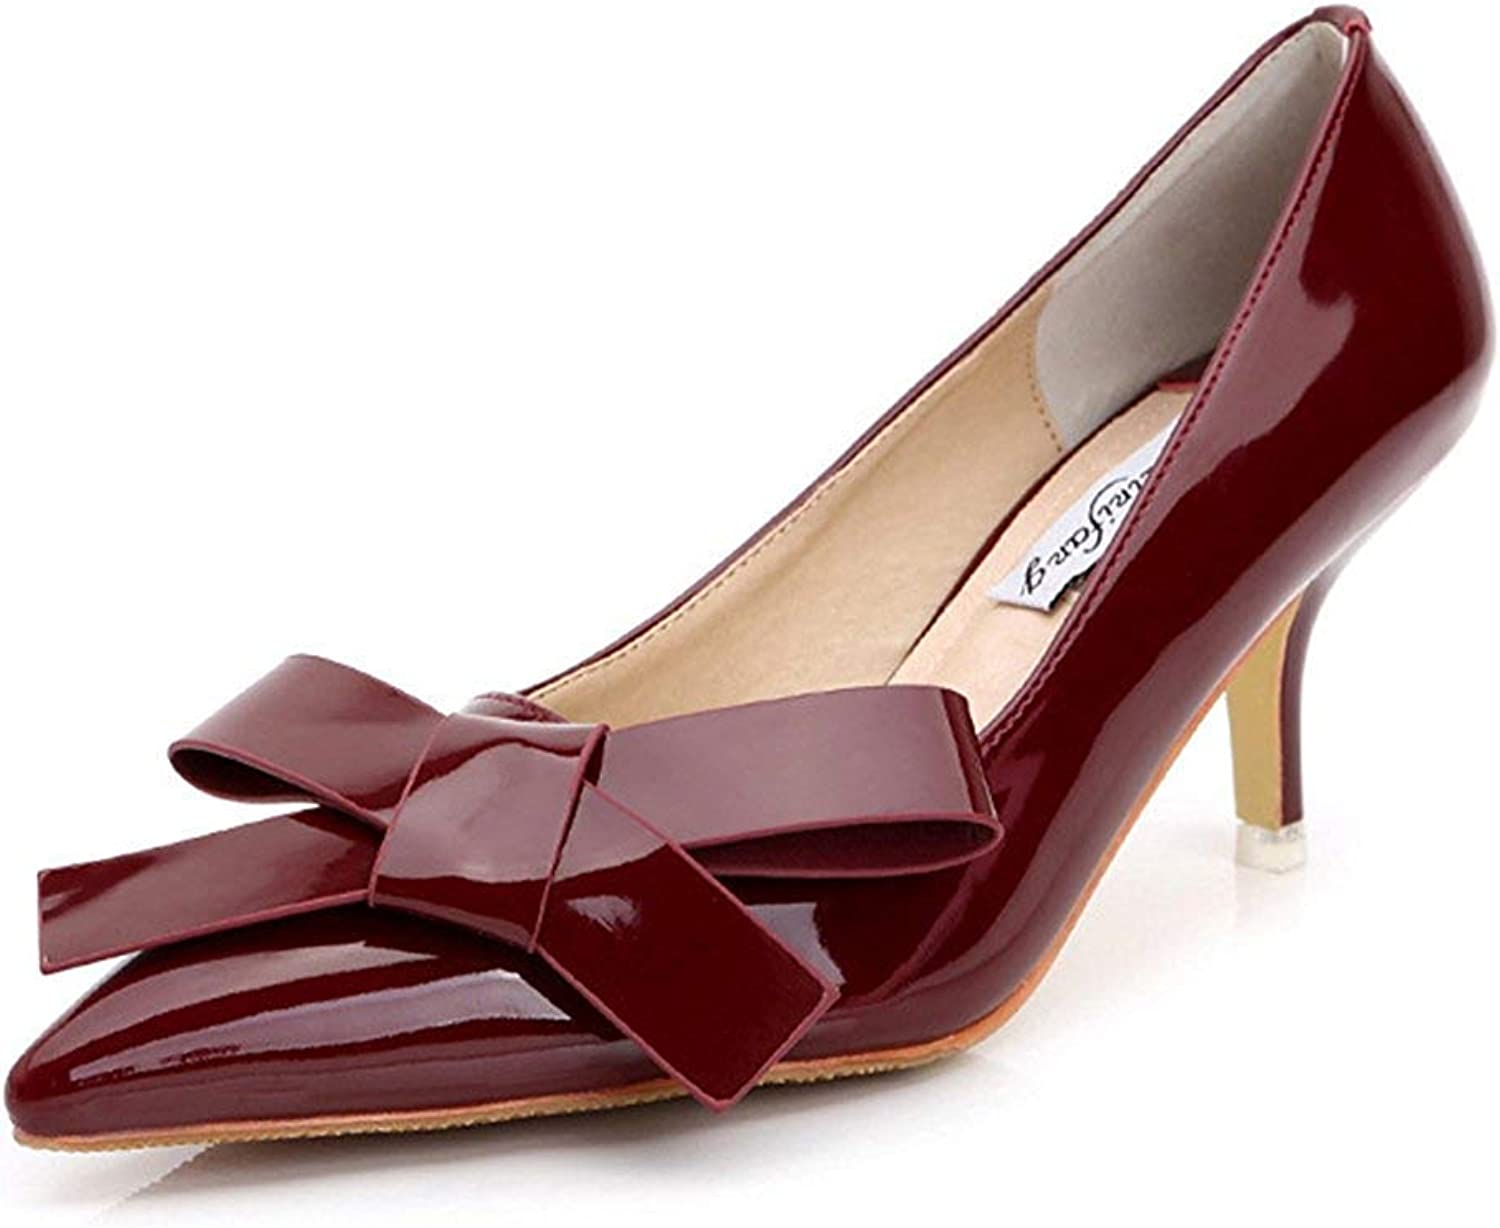 Unm Women's New Patent Leather Low Cut Pointed Toe Dress Slip On Pumps Bridal Party Stiletto Kitten Heels shoes with Bows